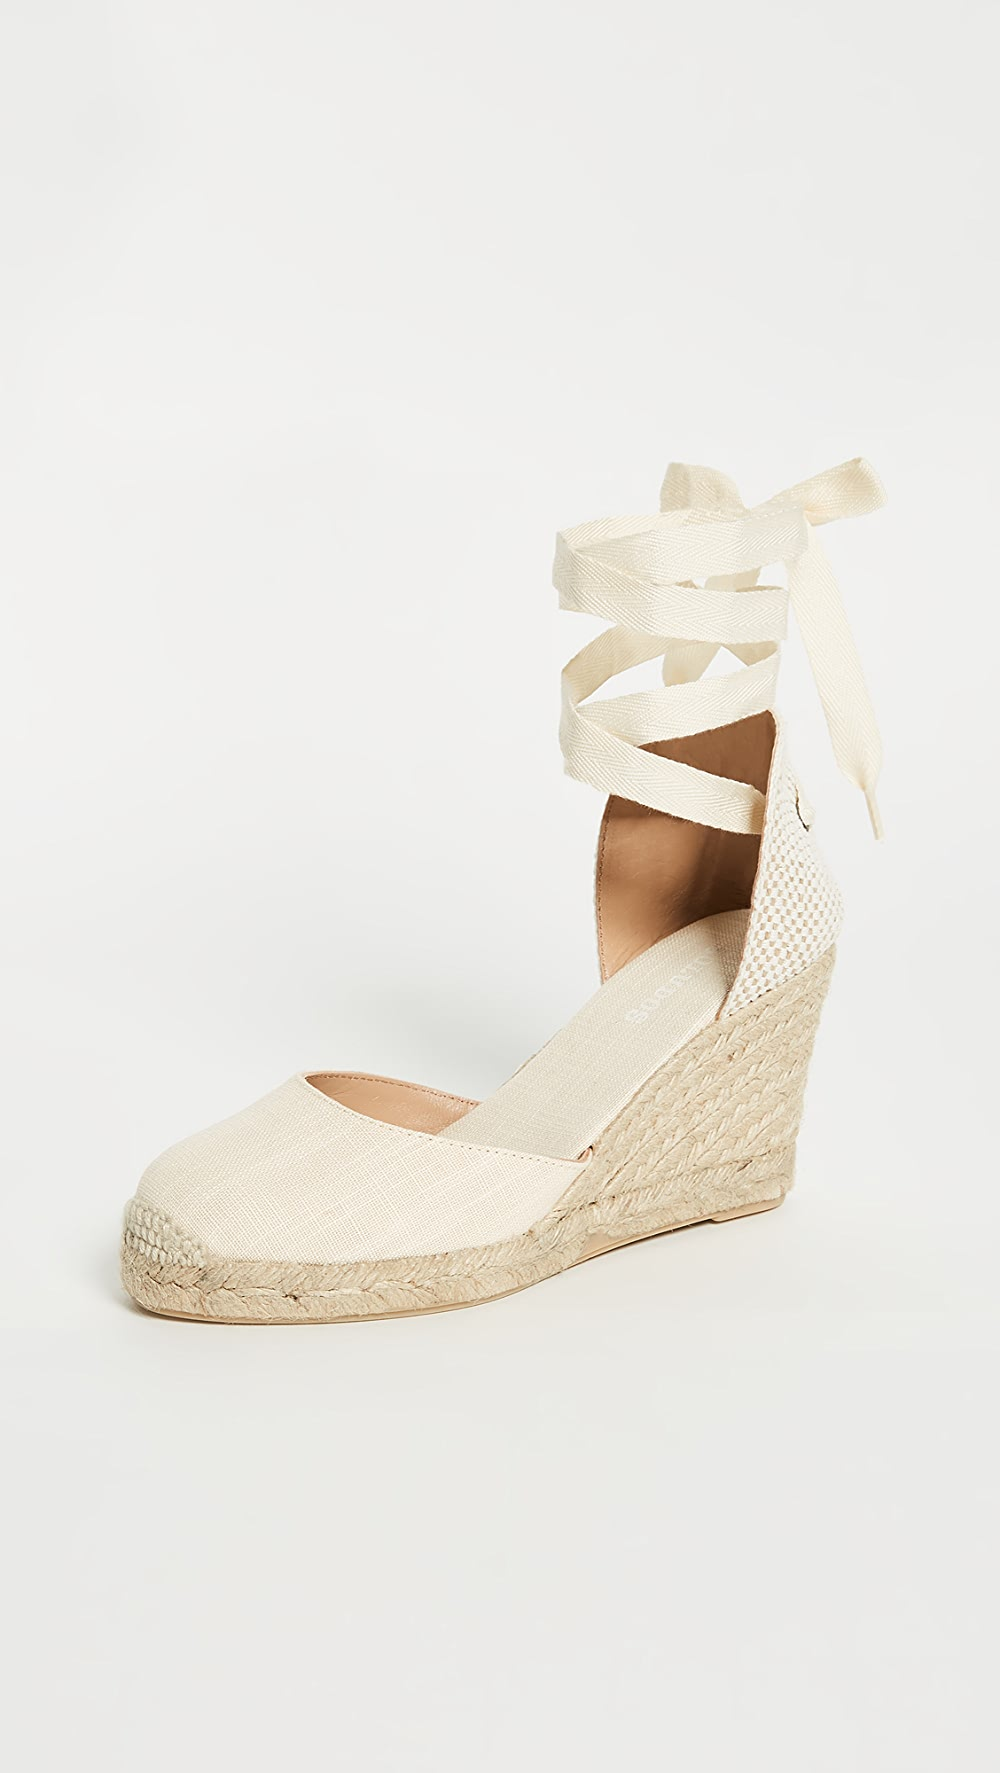 Hard-Working Soludos - Tall Wedge Espadrilles Famous For High Quality Raw Materials, Full Range Of Specifications And Sizes, And Great Variety Of Designs And Colors